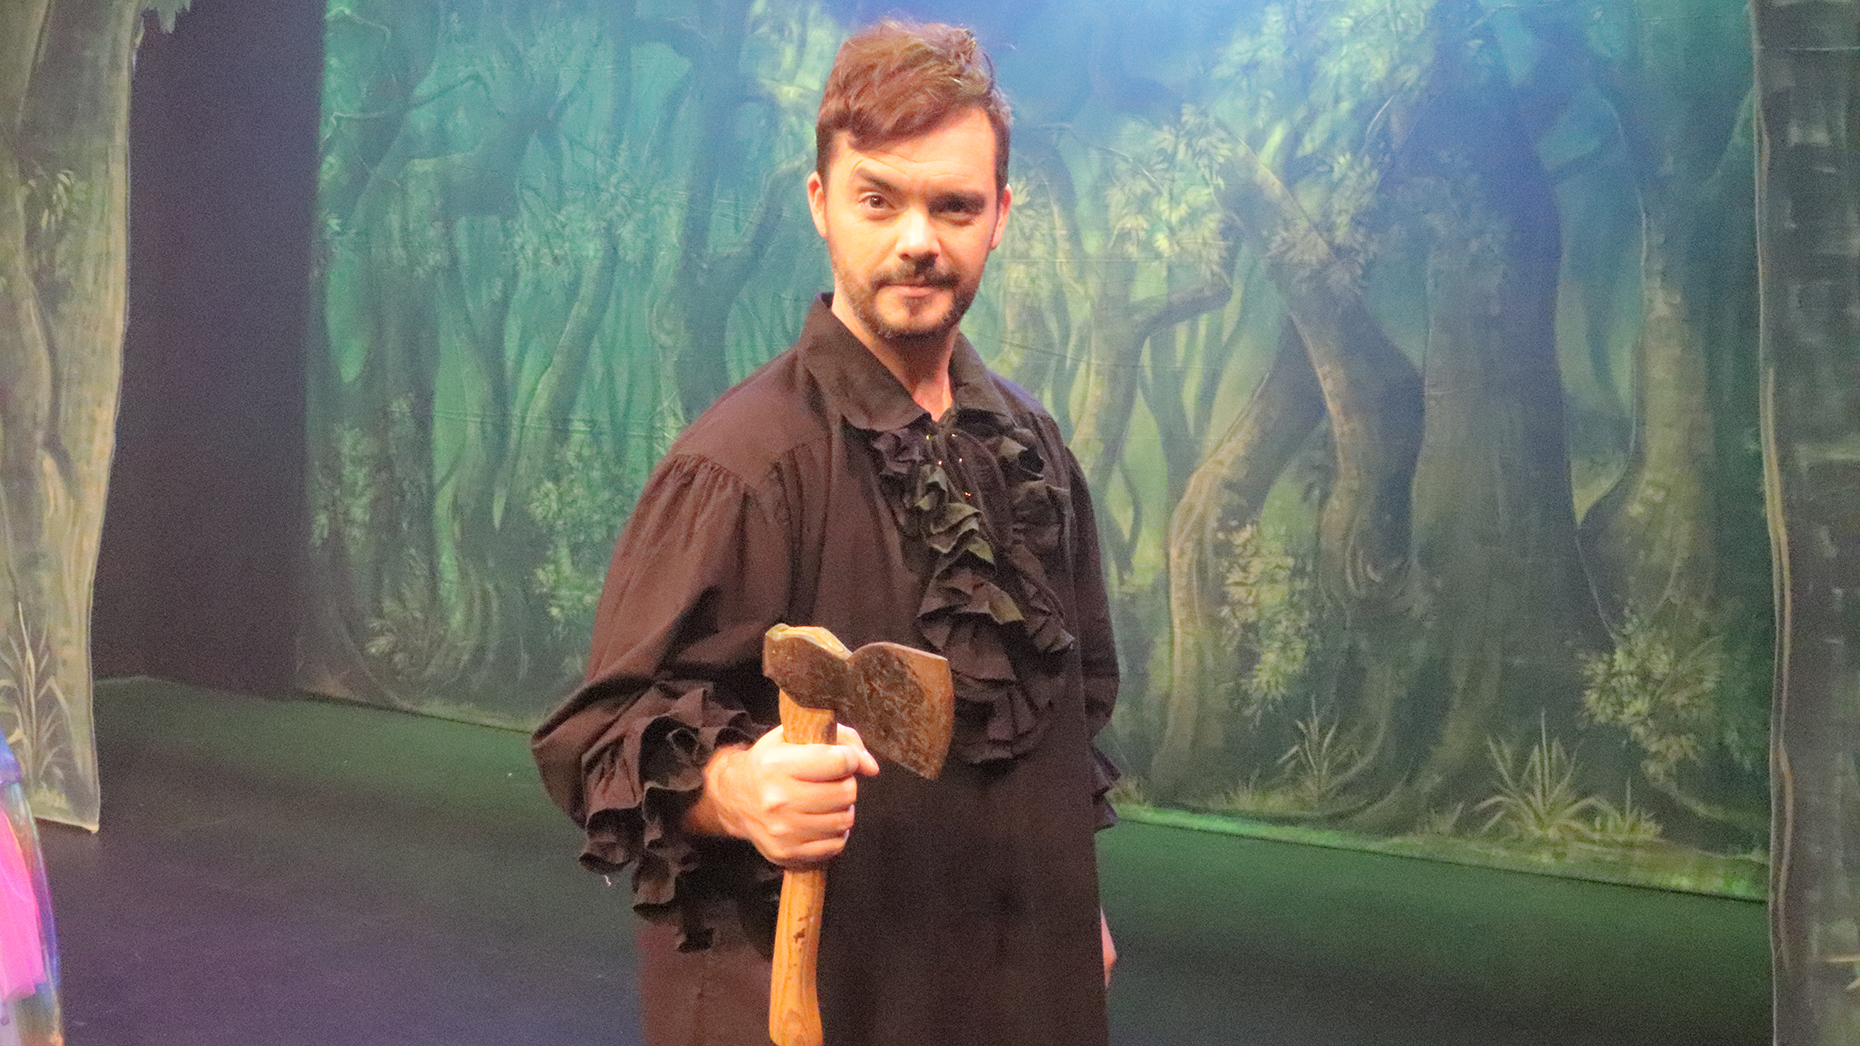 Meet the cast: Snow White coming to New Theatre Royal this